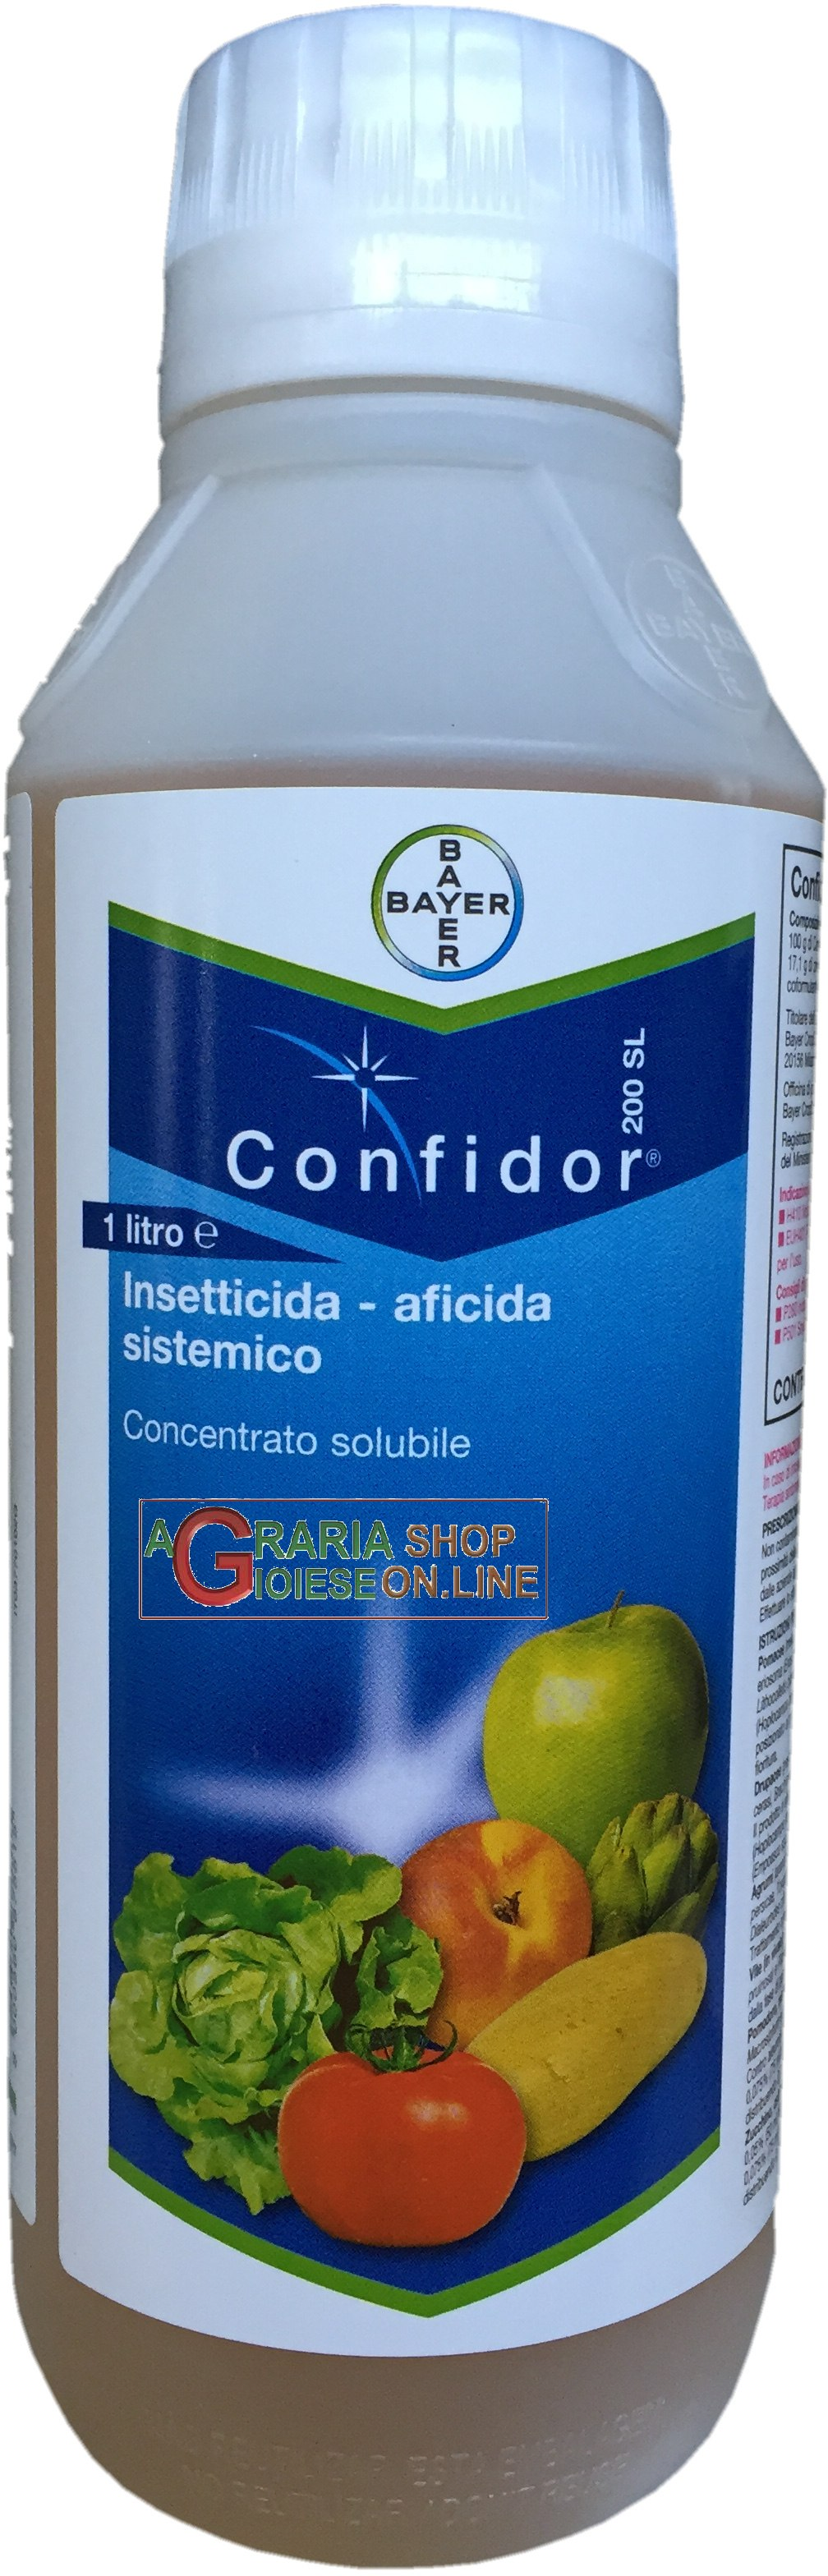 Confidor: instructions for use. Destroy all pests 88